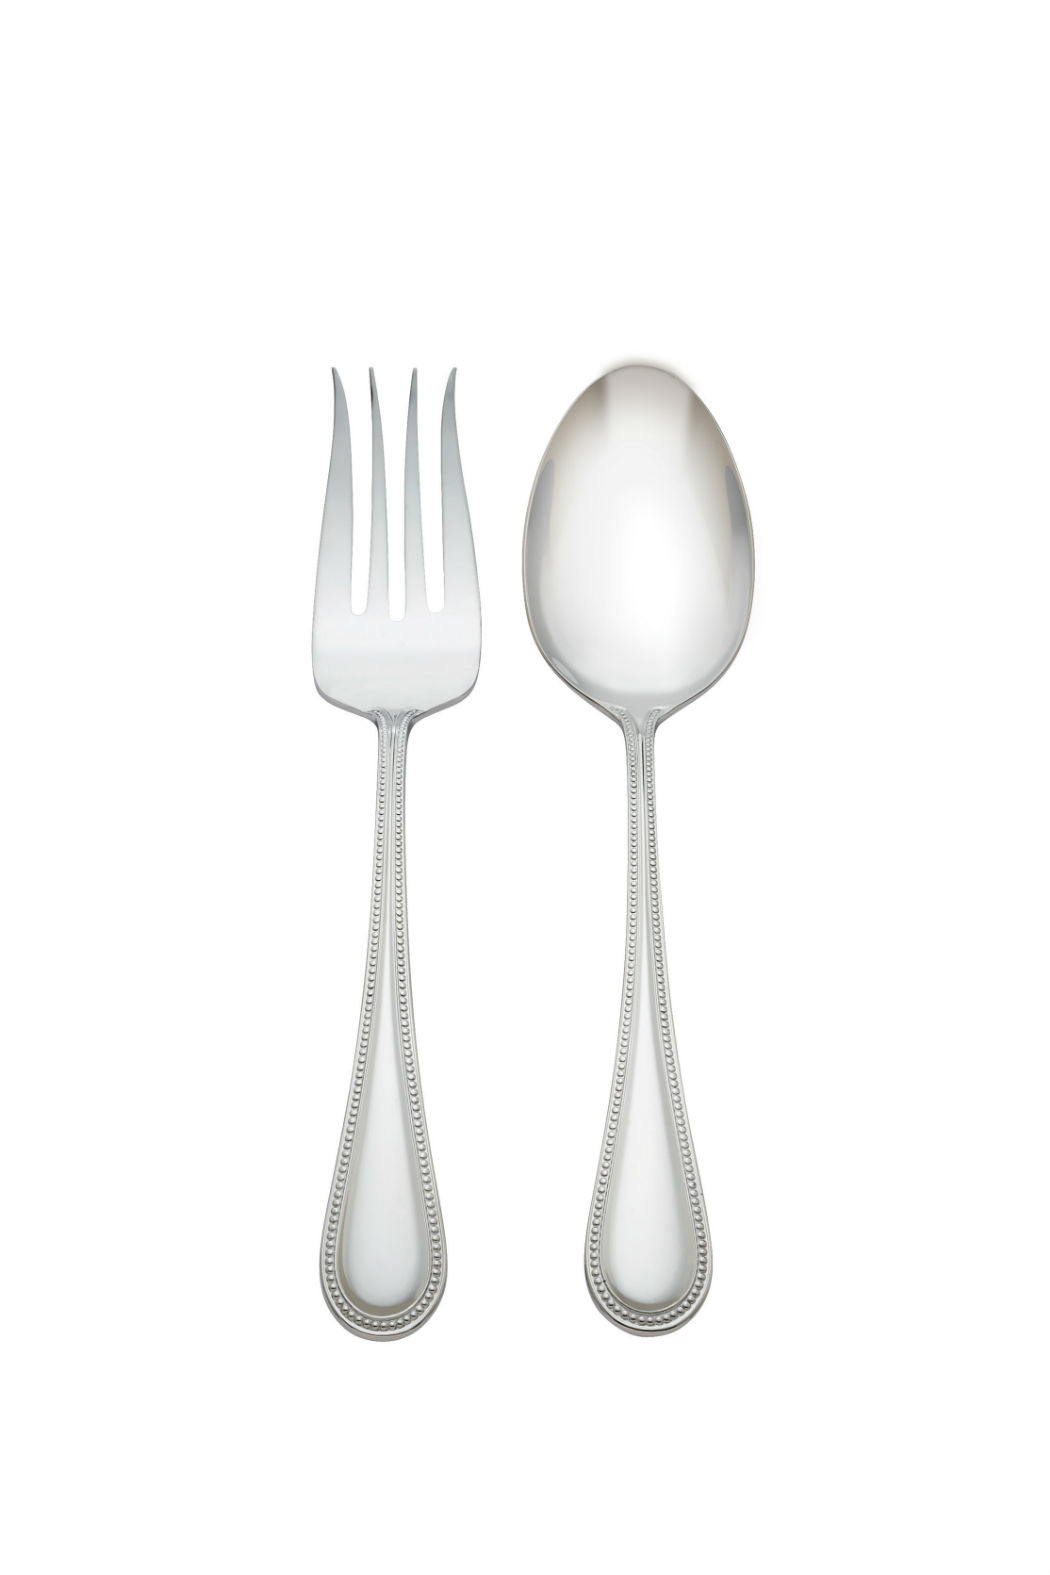 Reed & Barton Lyndon 2 Piece Salad Servers